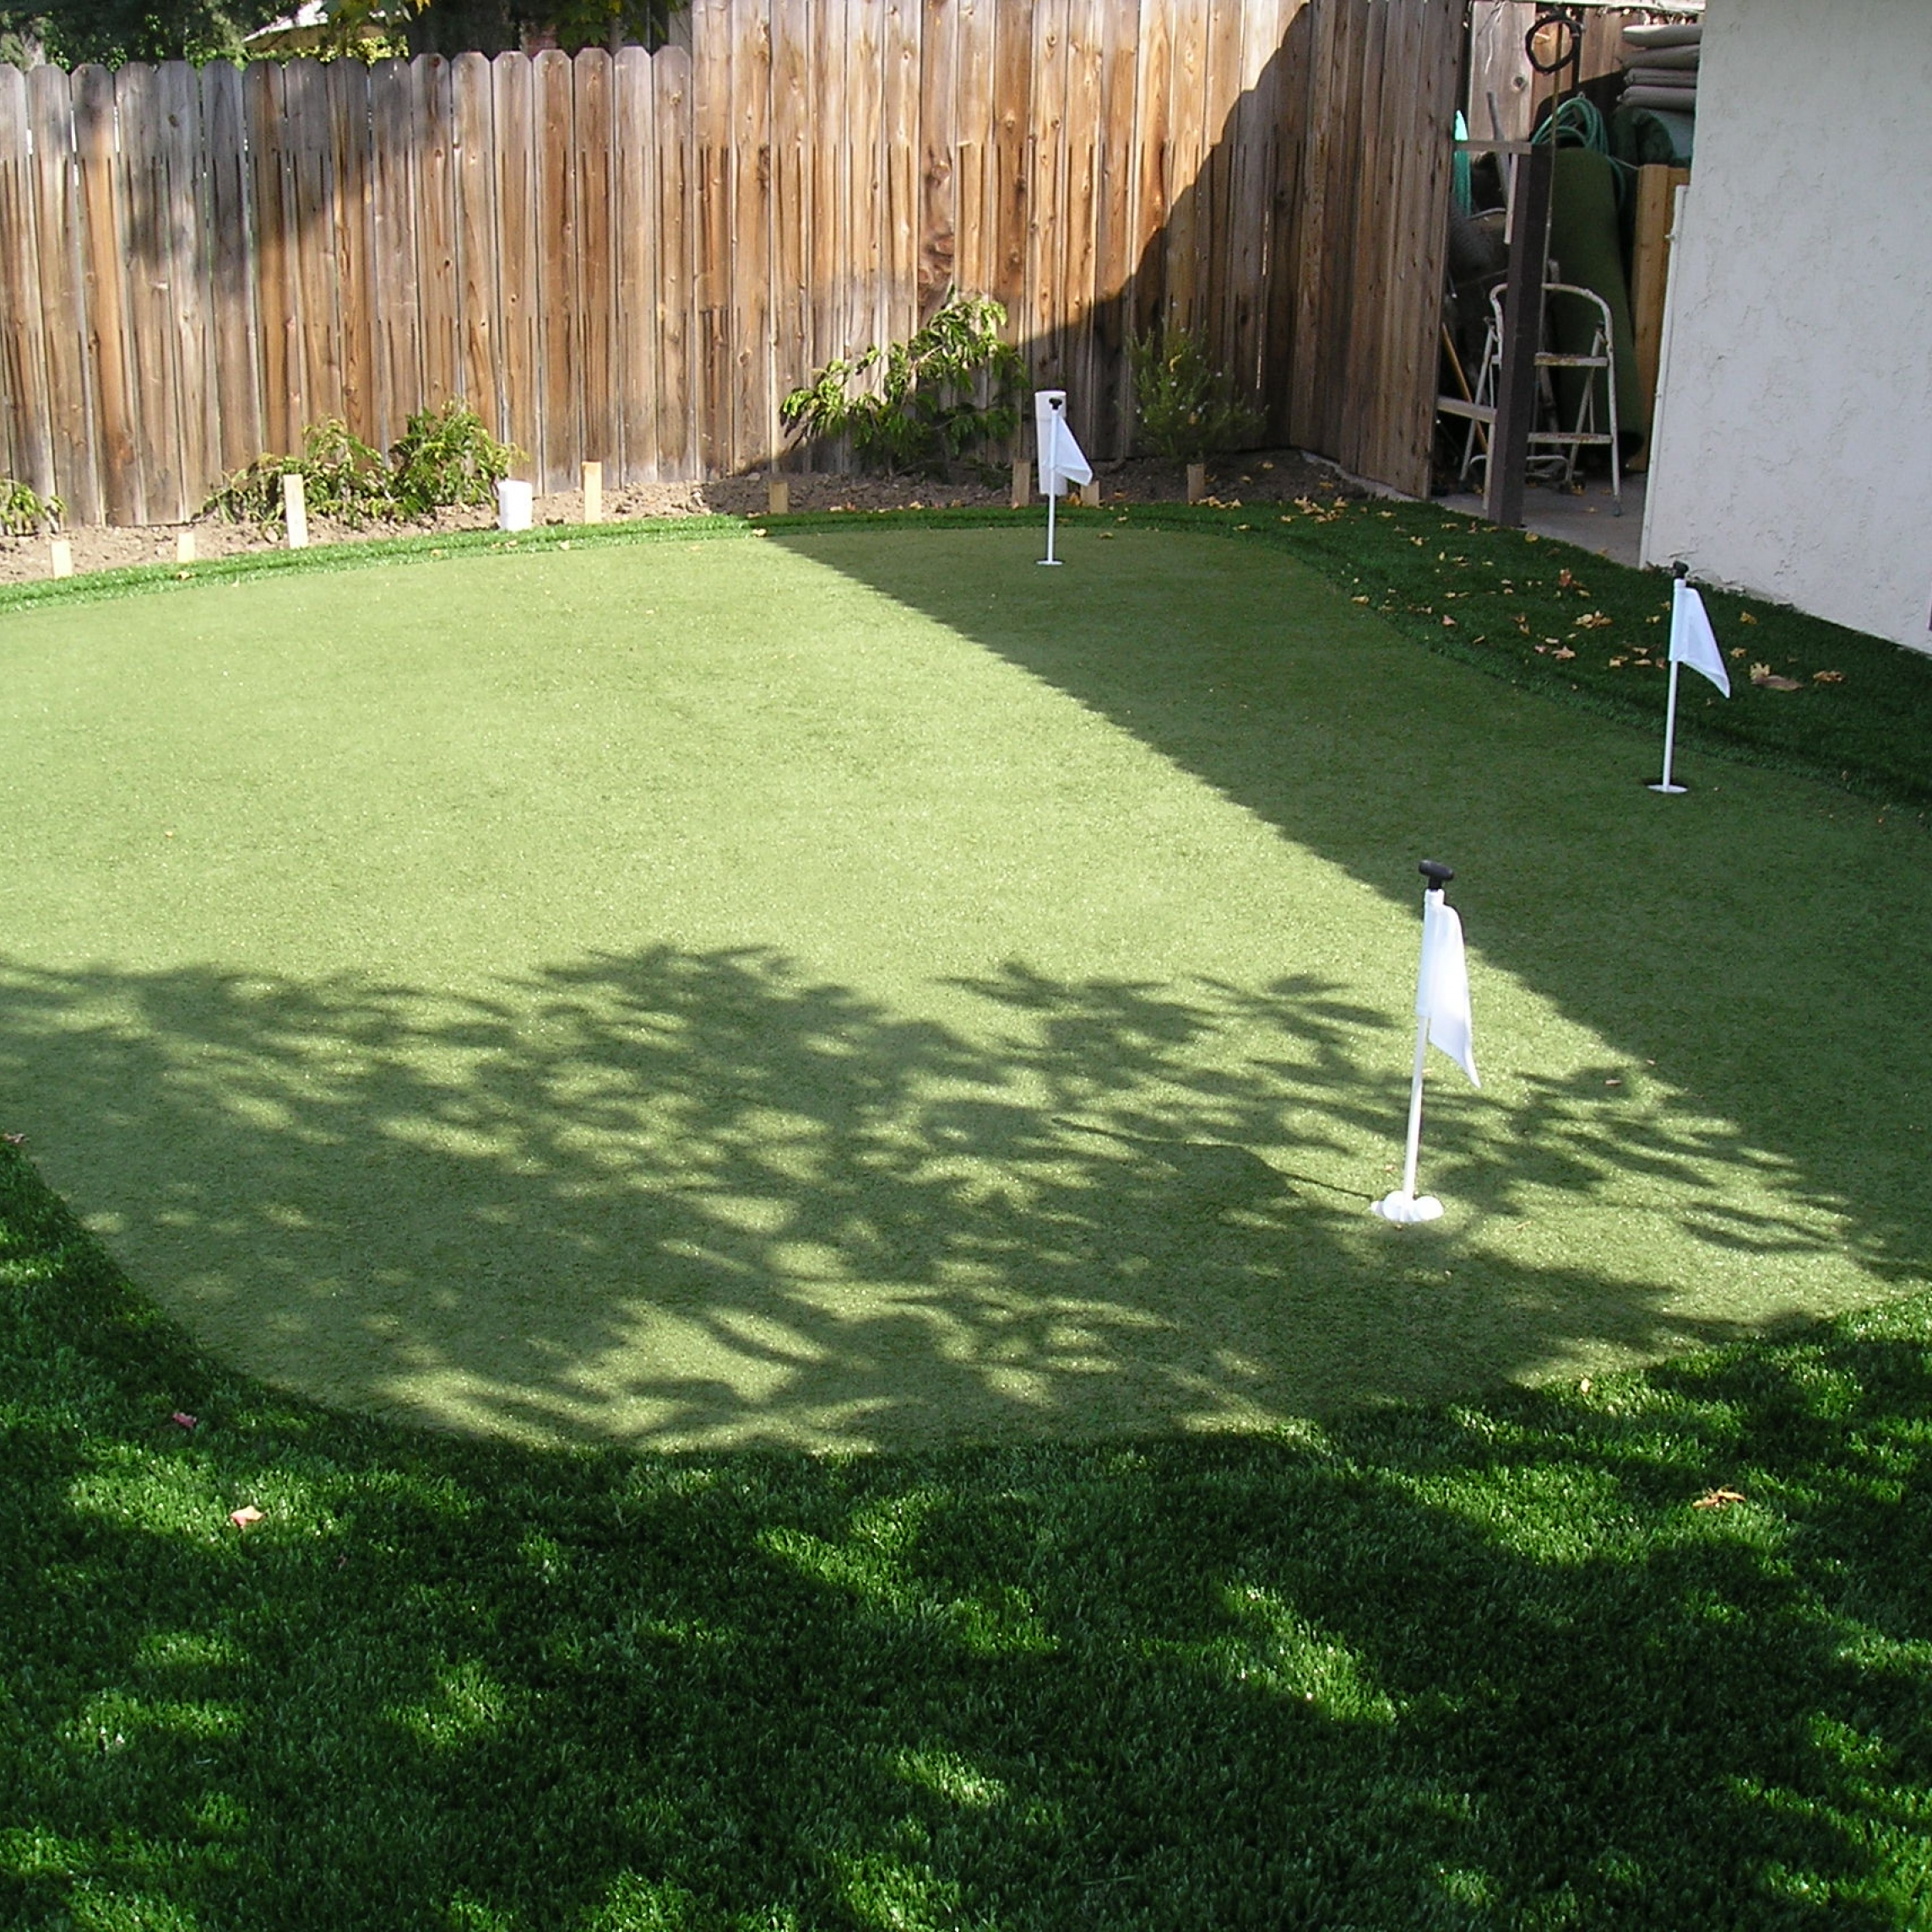 Putt-60 Bicolor backyard turf,turf backyard,fake grass for backyard,fake grass backyard,artificial grass backyard,fake grass for yard,backyard turf,turf backyard,turf yard,fake grass for backyard,artificial lawn,synthetic lawn,fake lawn,turf lawn,fake grass lawn,backyard turf,turf backyard,fake grass for backyard,fake grass backyard,artificial grass backyard